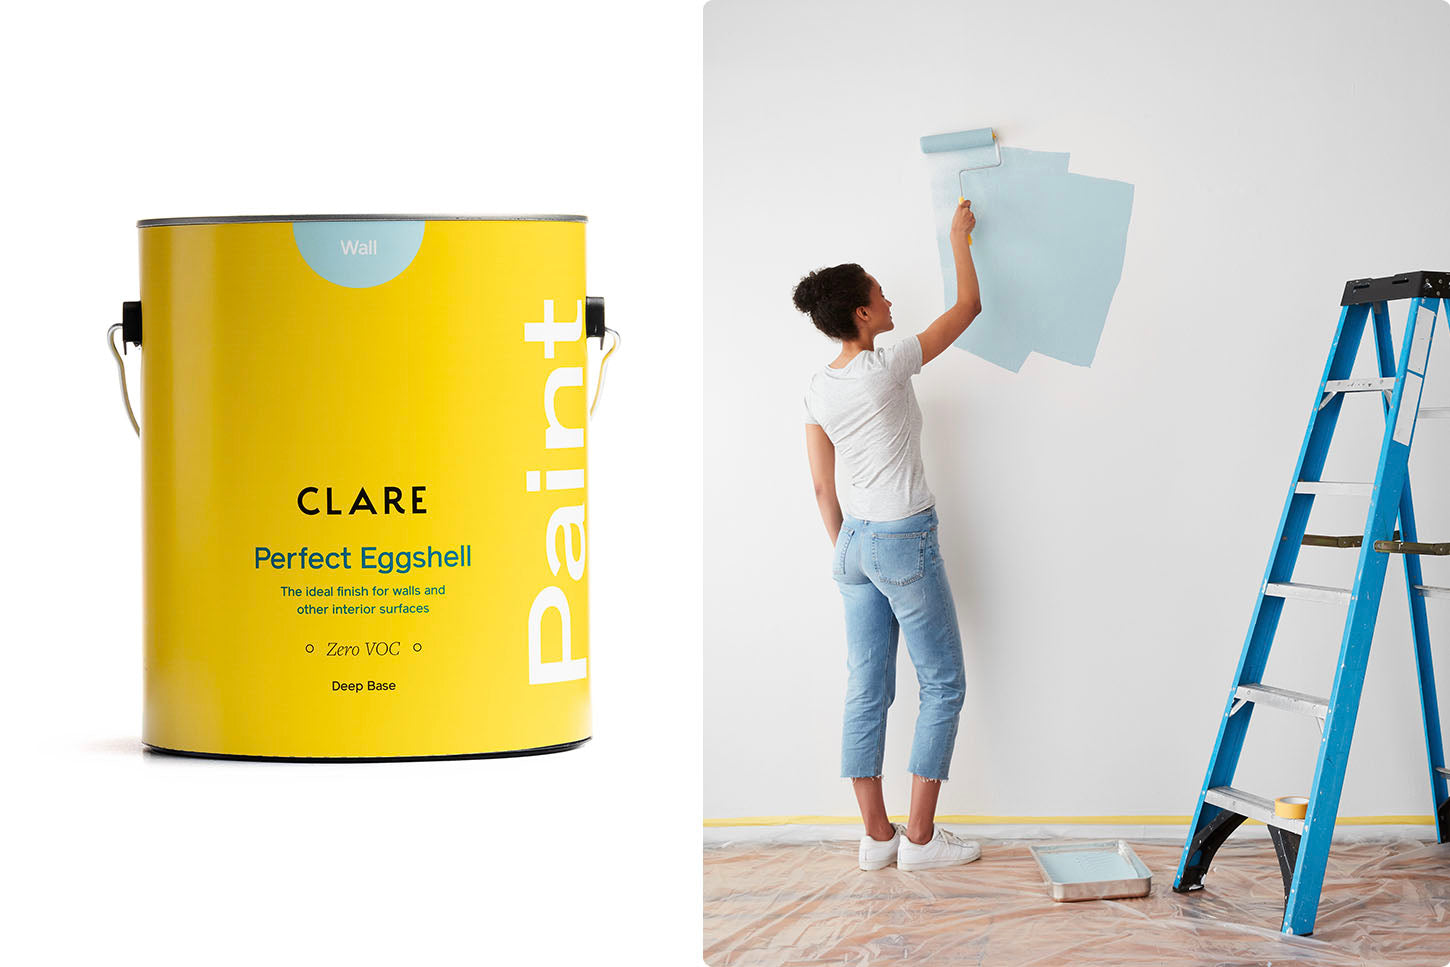 The best paint finish for walls is eggshell paint